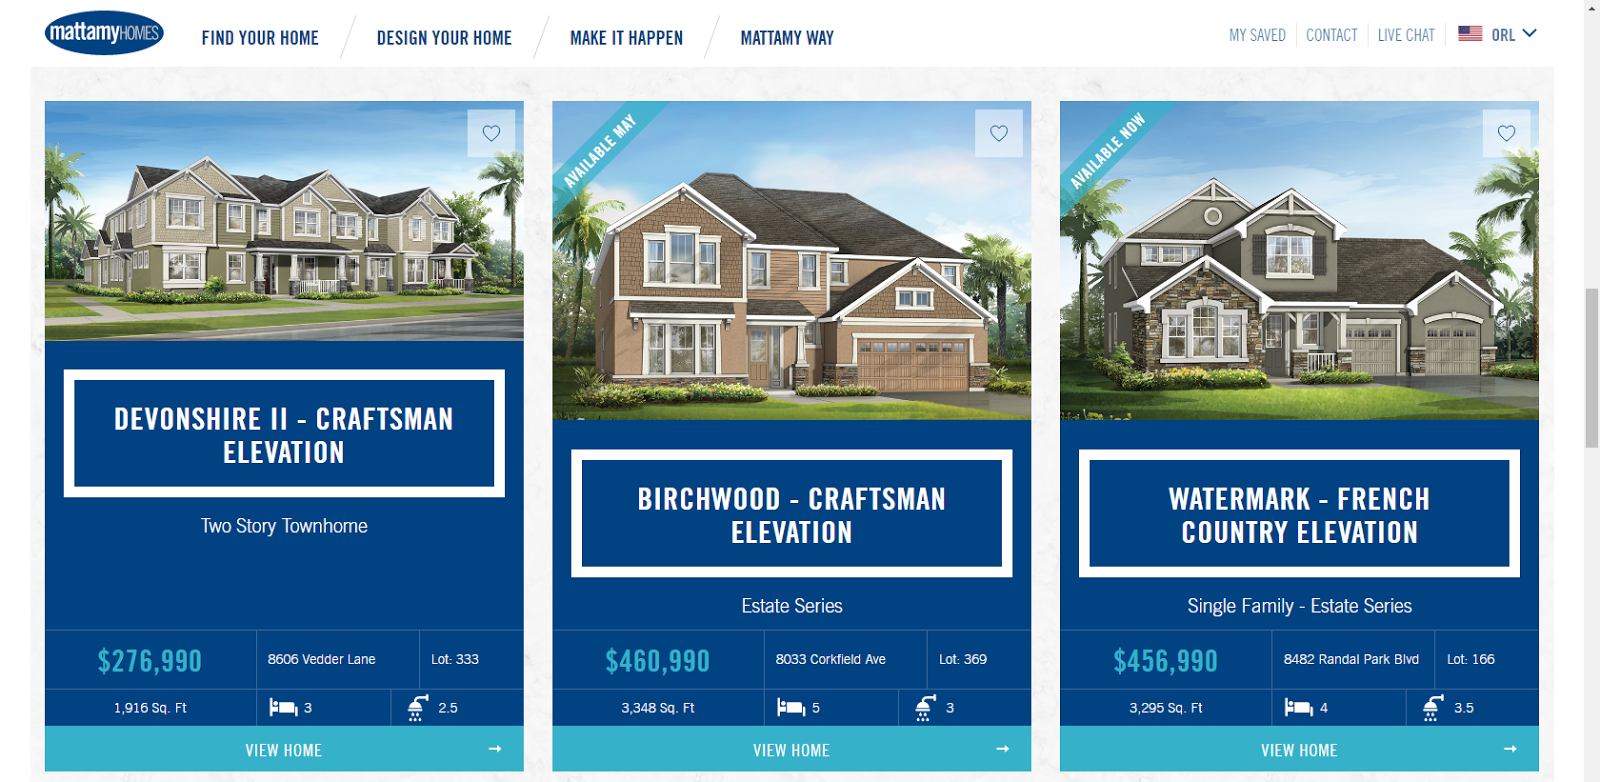 CALL NEW CONSTRUCTION REBATES TODAY OFFER ONLY VALID WHILE THESE 7 HOMES ARE AVAILABLE THROUGH EMMA REICHERT 3219452703